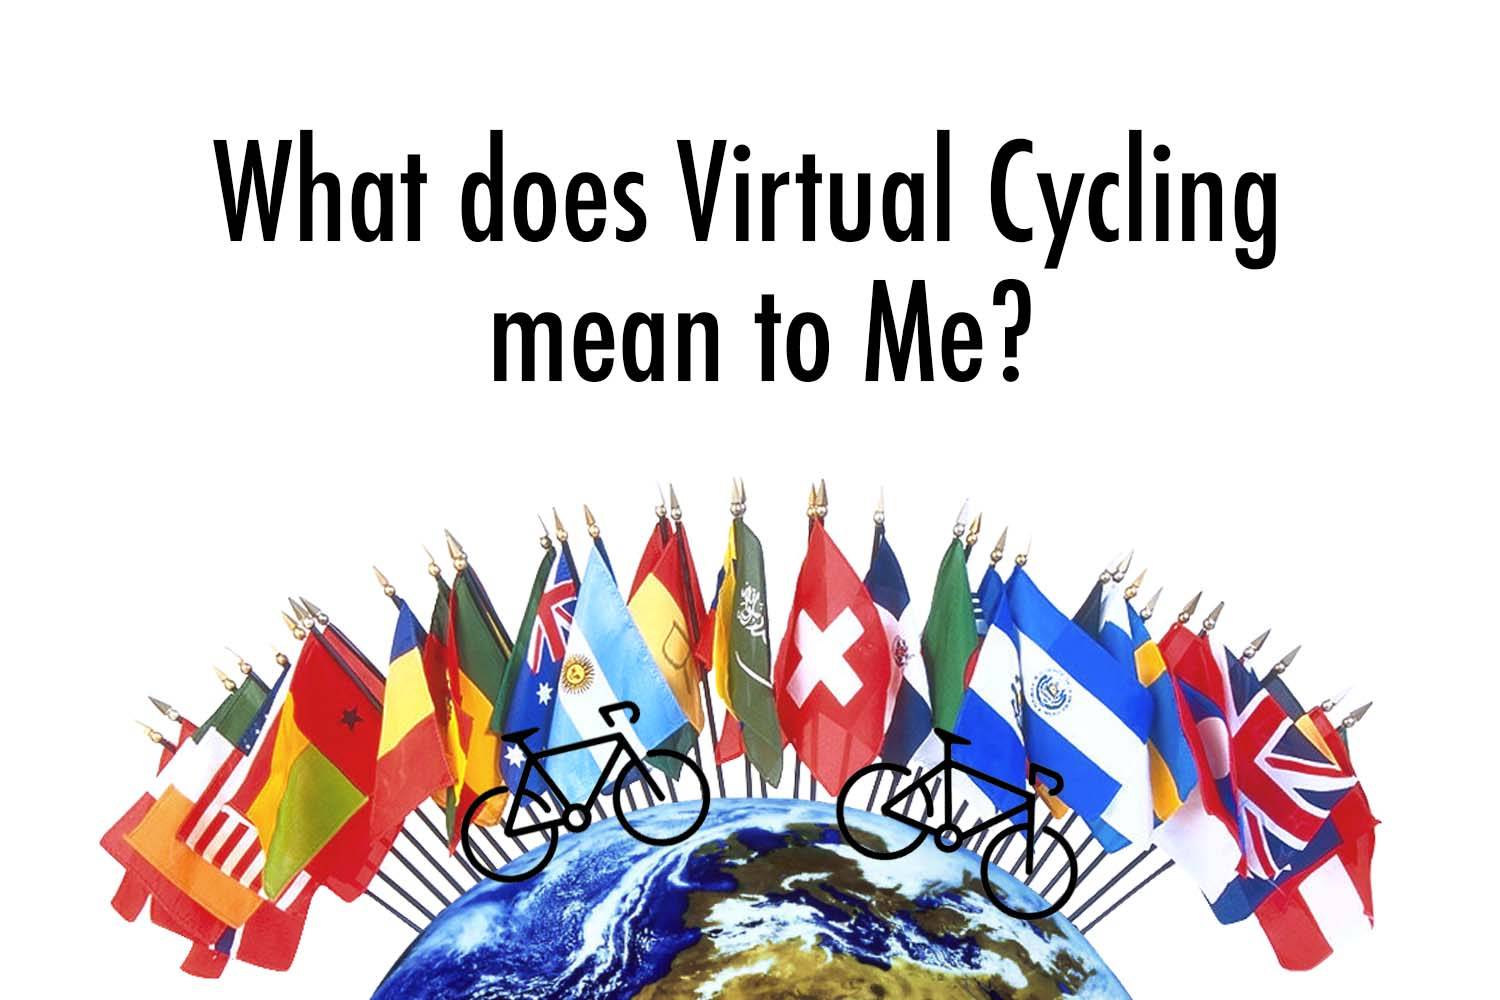 What does Virtual Cycling mean to you?